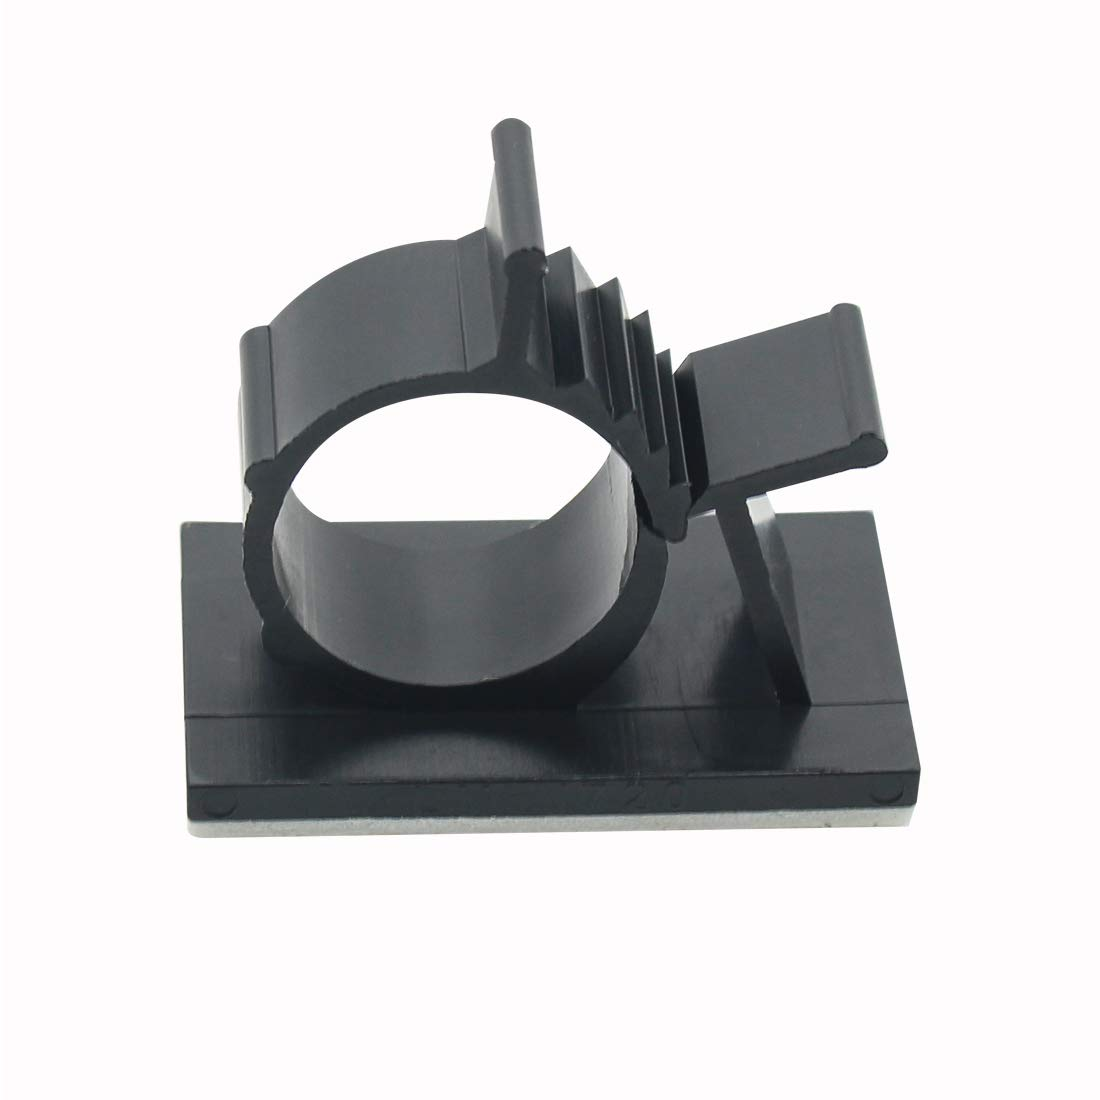 25PCS Black Adhesive Backed Nylon Wire Adjustable Cable Clips Clamps